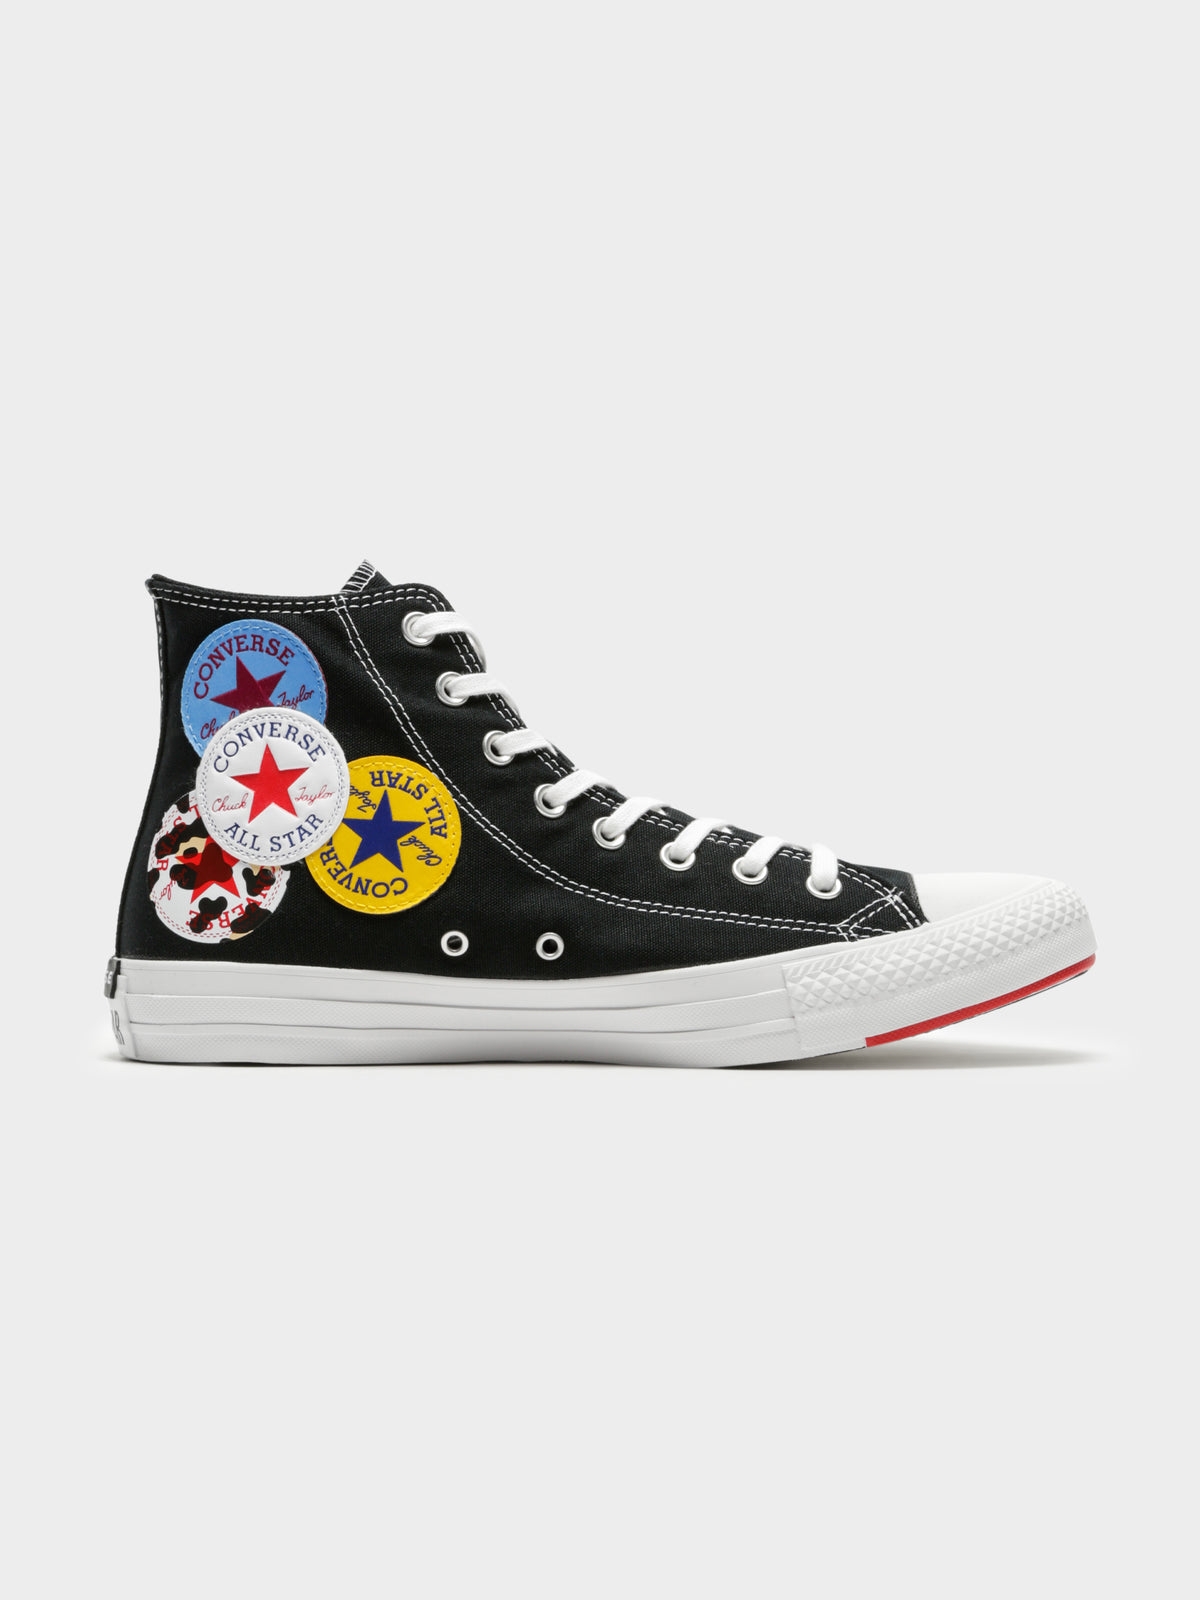 Unisex Chuck Taylor All Star Logo Play Sneakers in Black & University Red